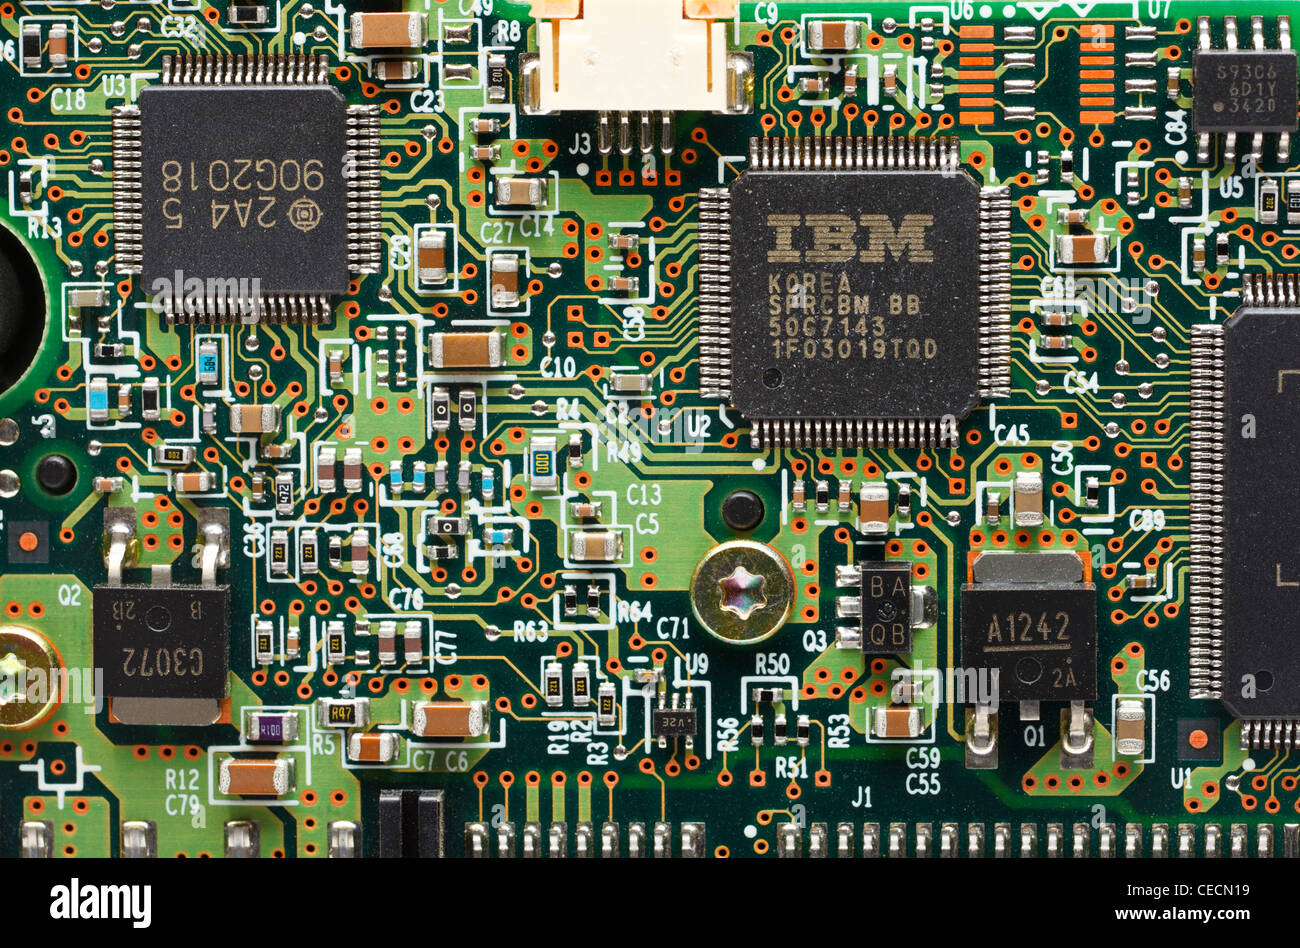 circuit board components stock photos circuit board components rh alamy com Rometty IBM IBM Blade Server